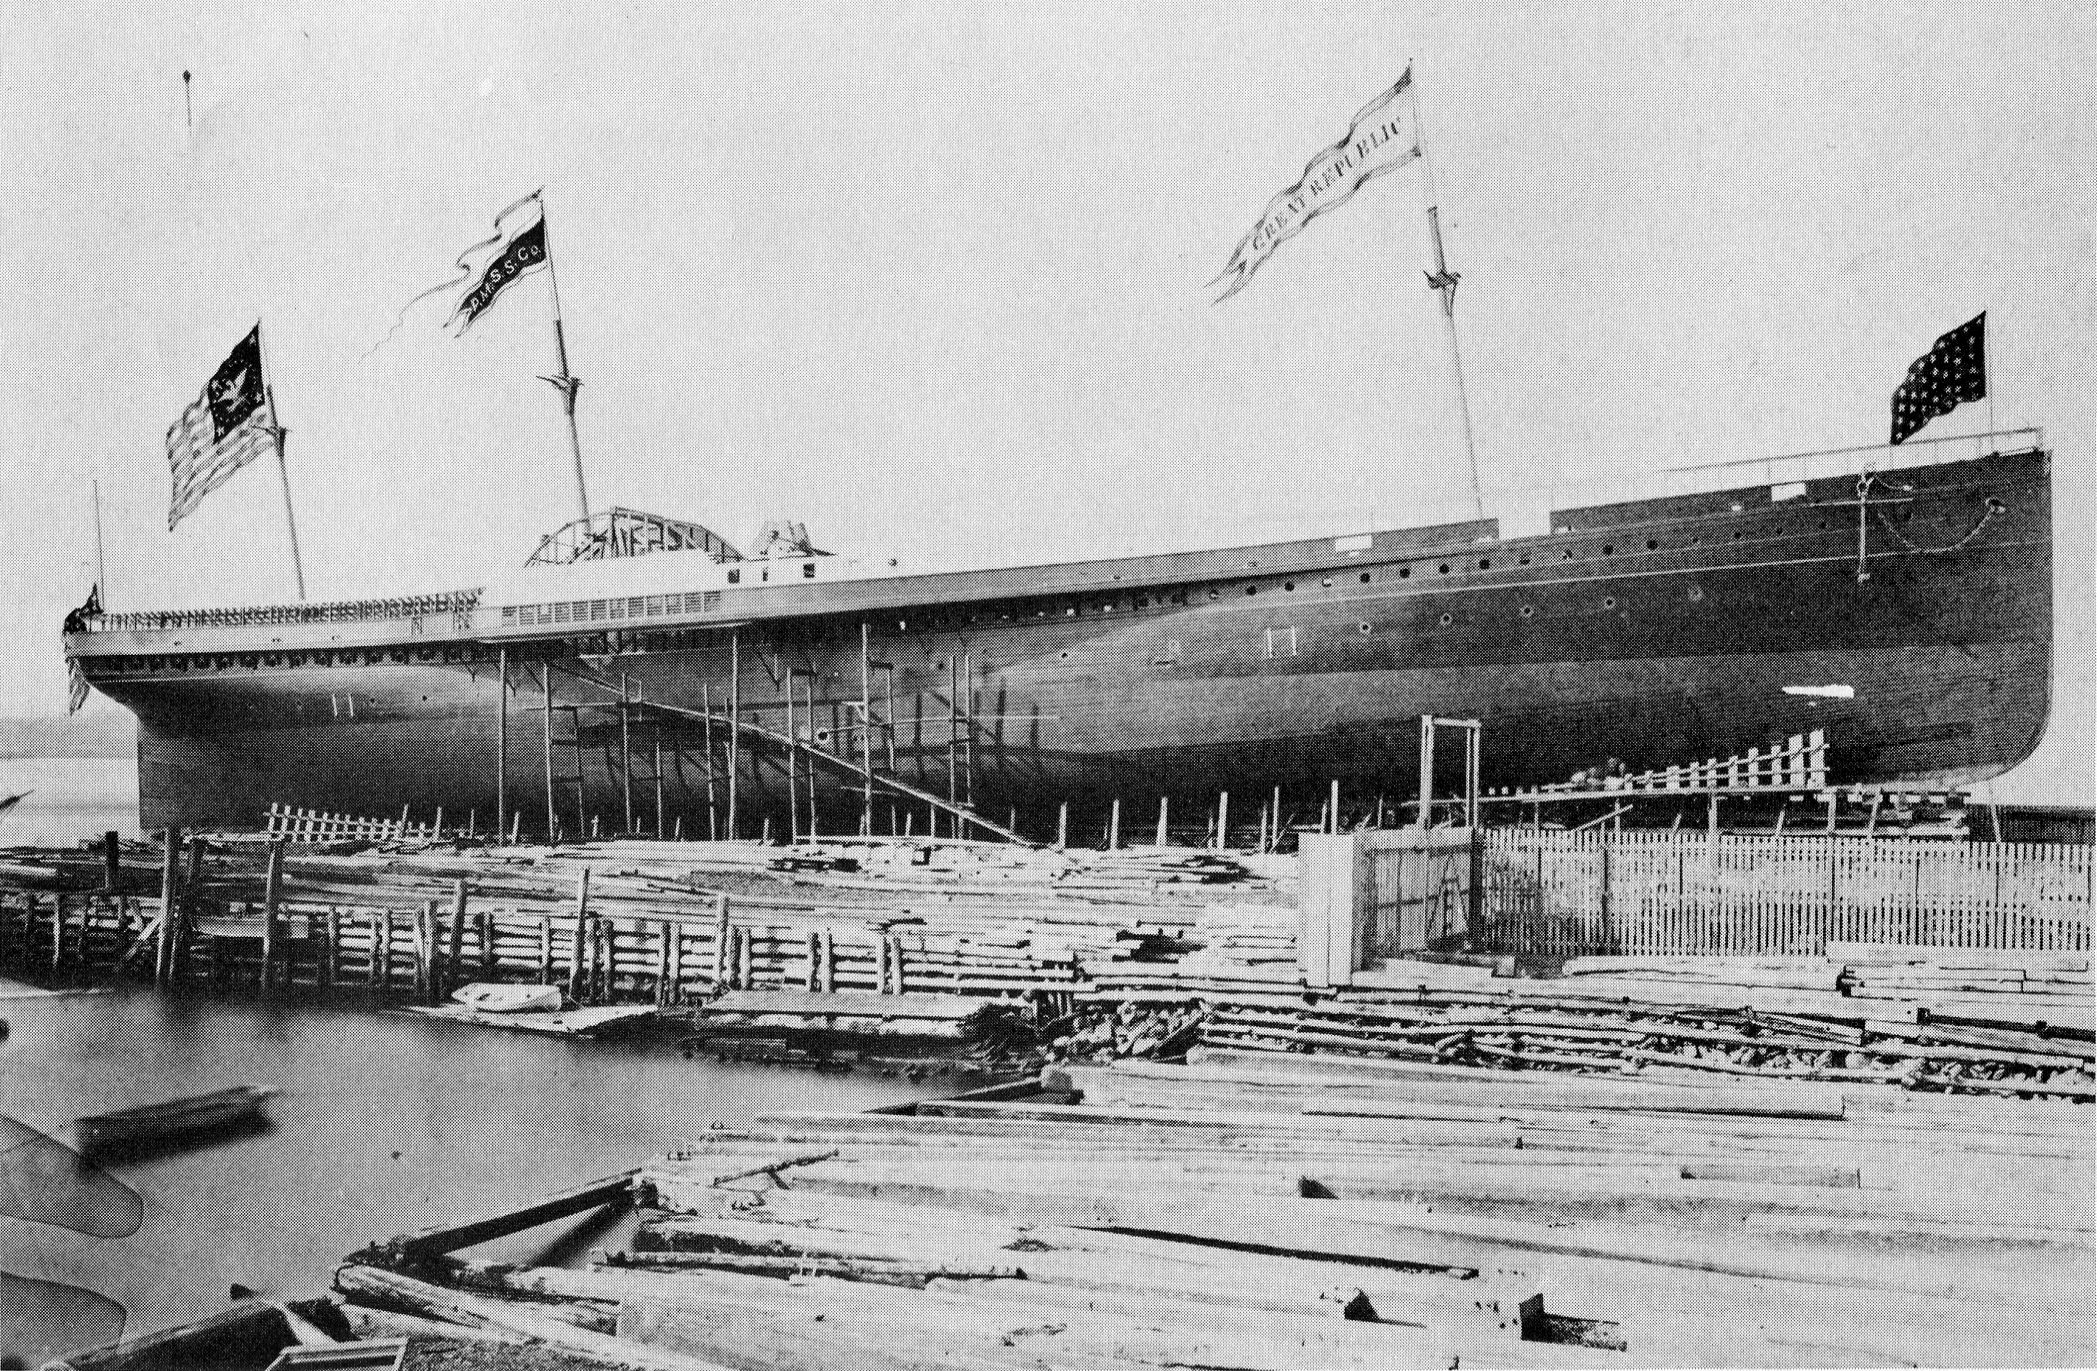 SS Great Republic under construction, 1866